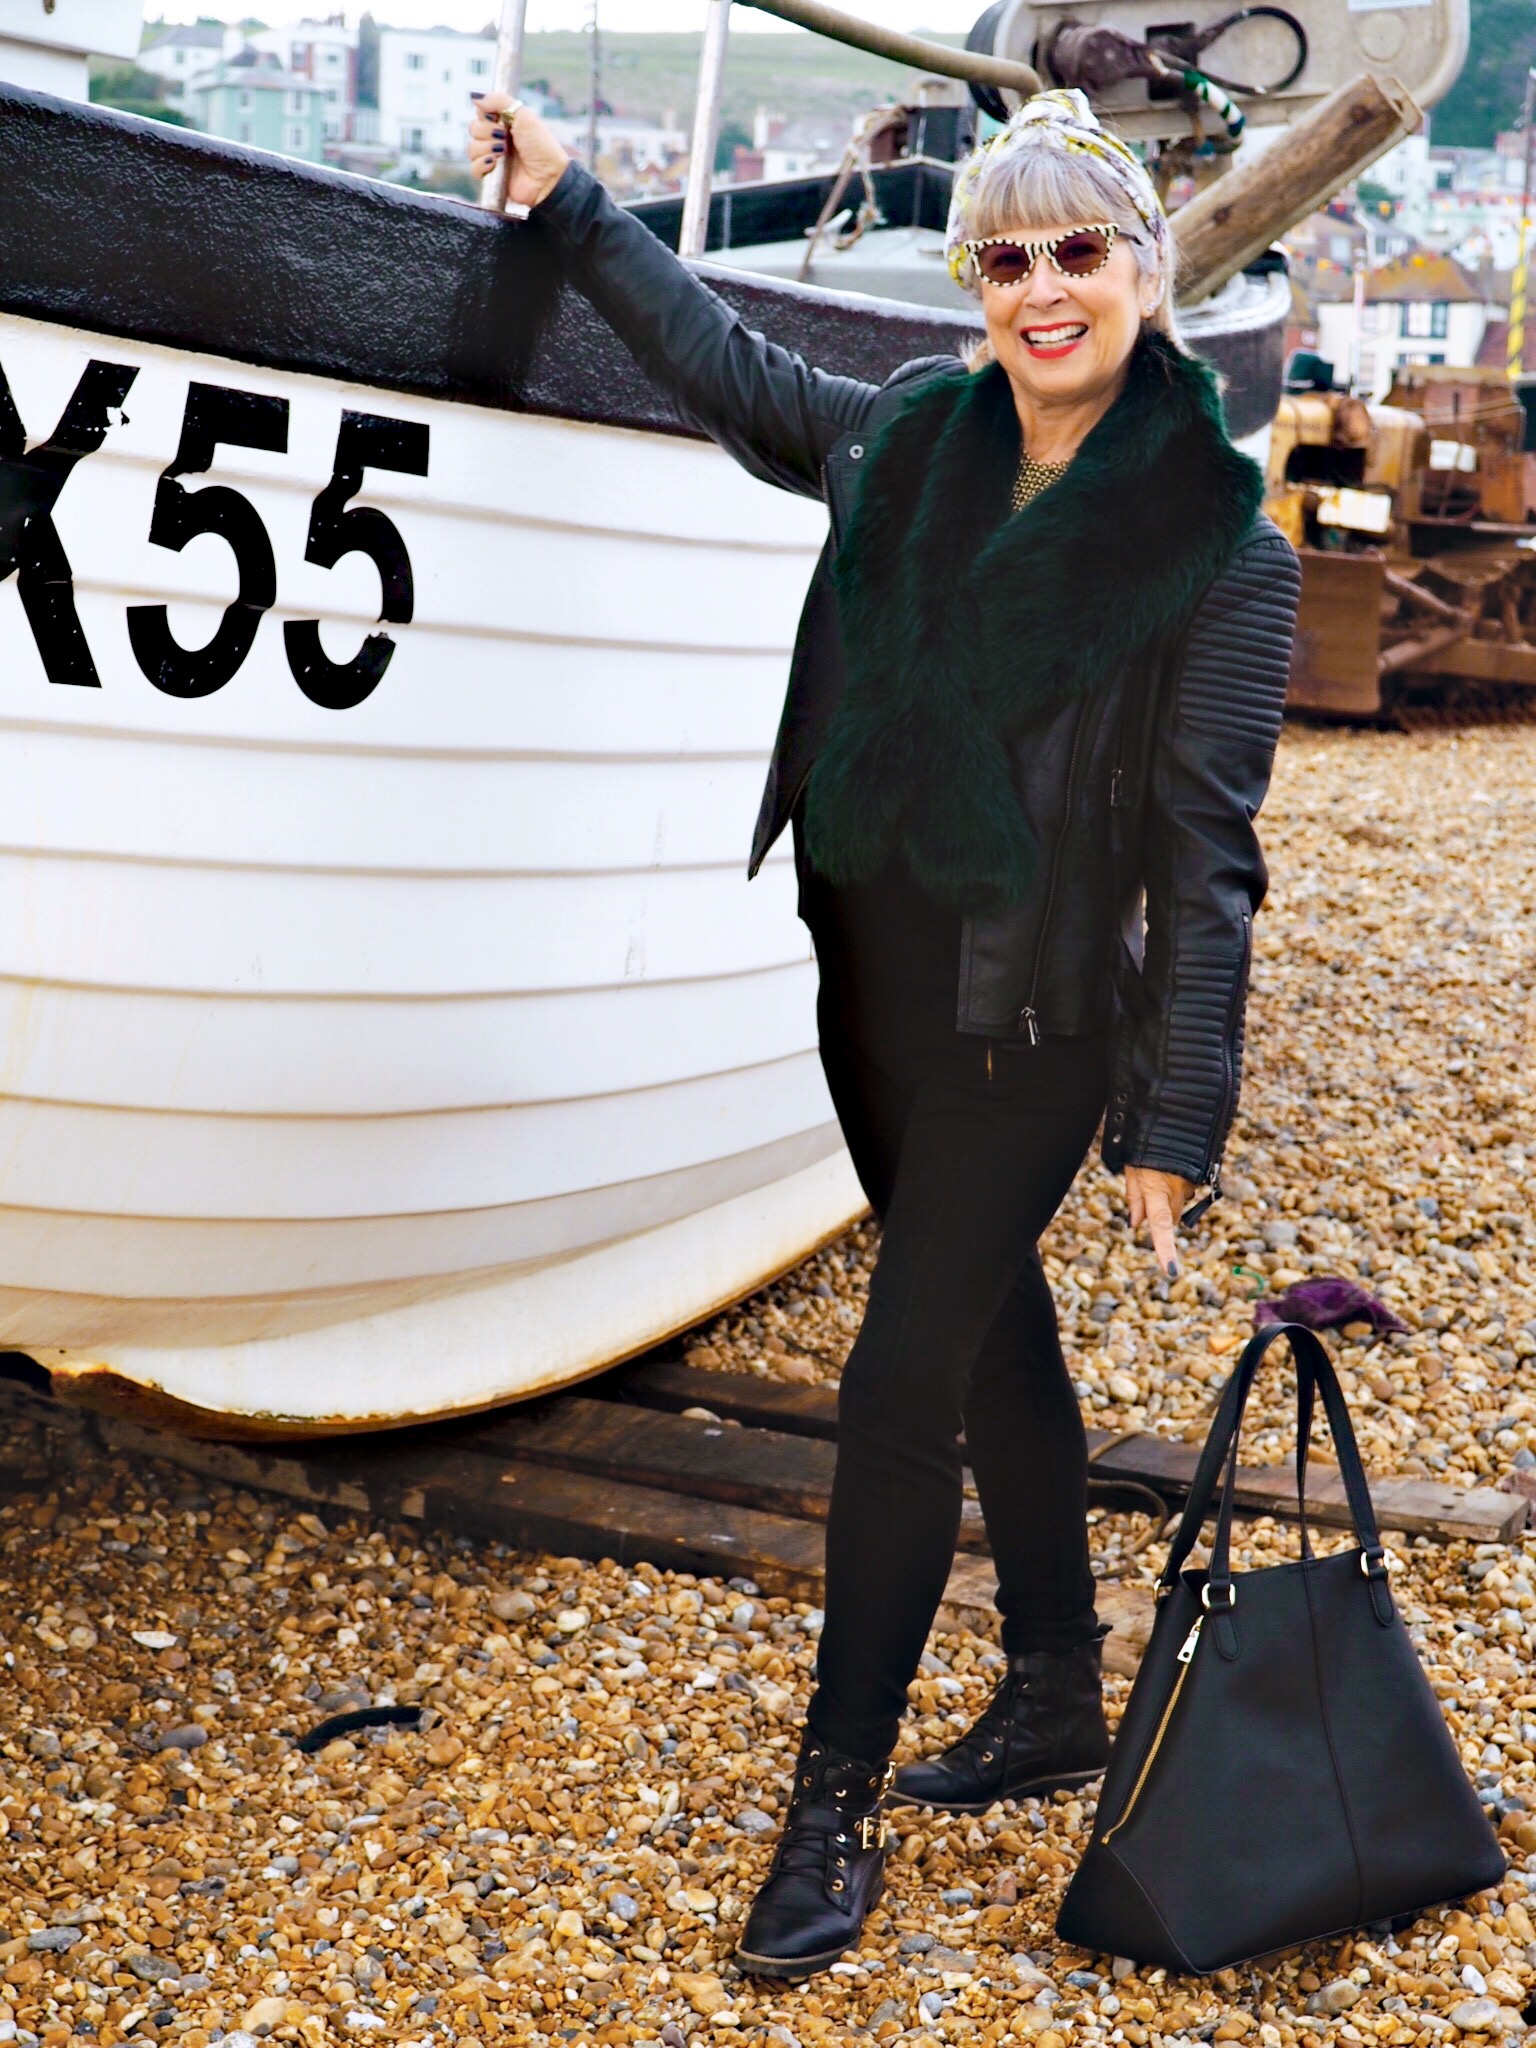 Wearing a leather jacket at the end of October in Hastings.